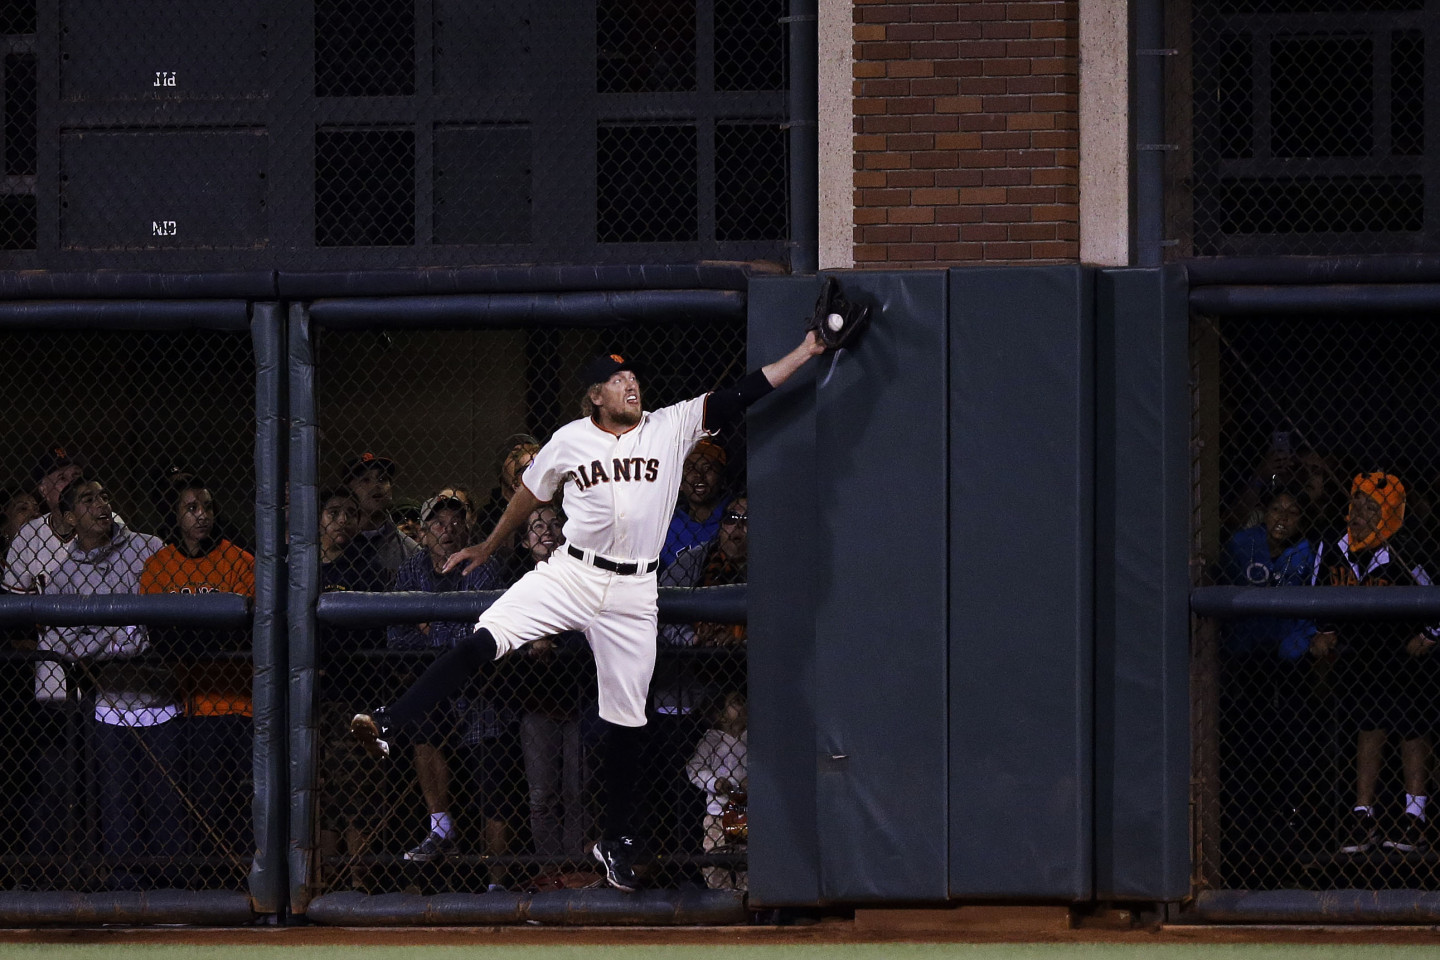 Hunter Pence catches one at the wall.